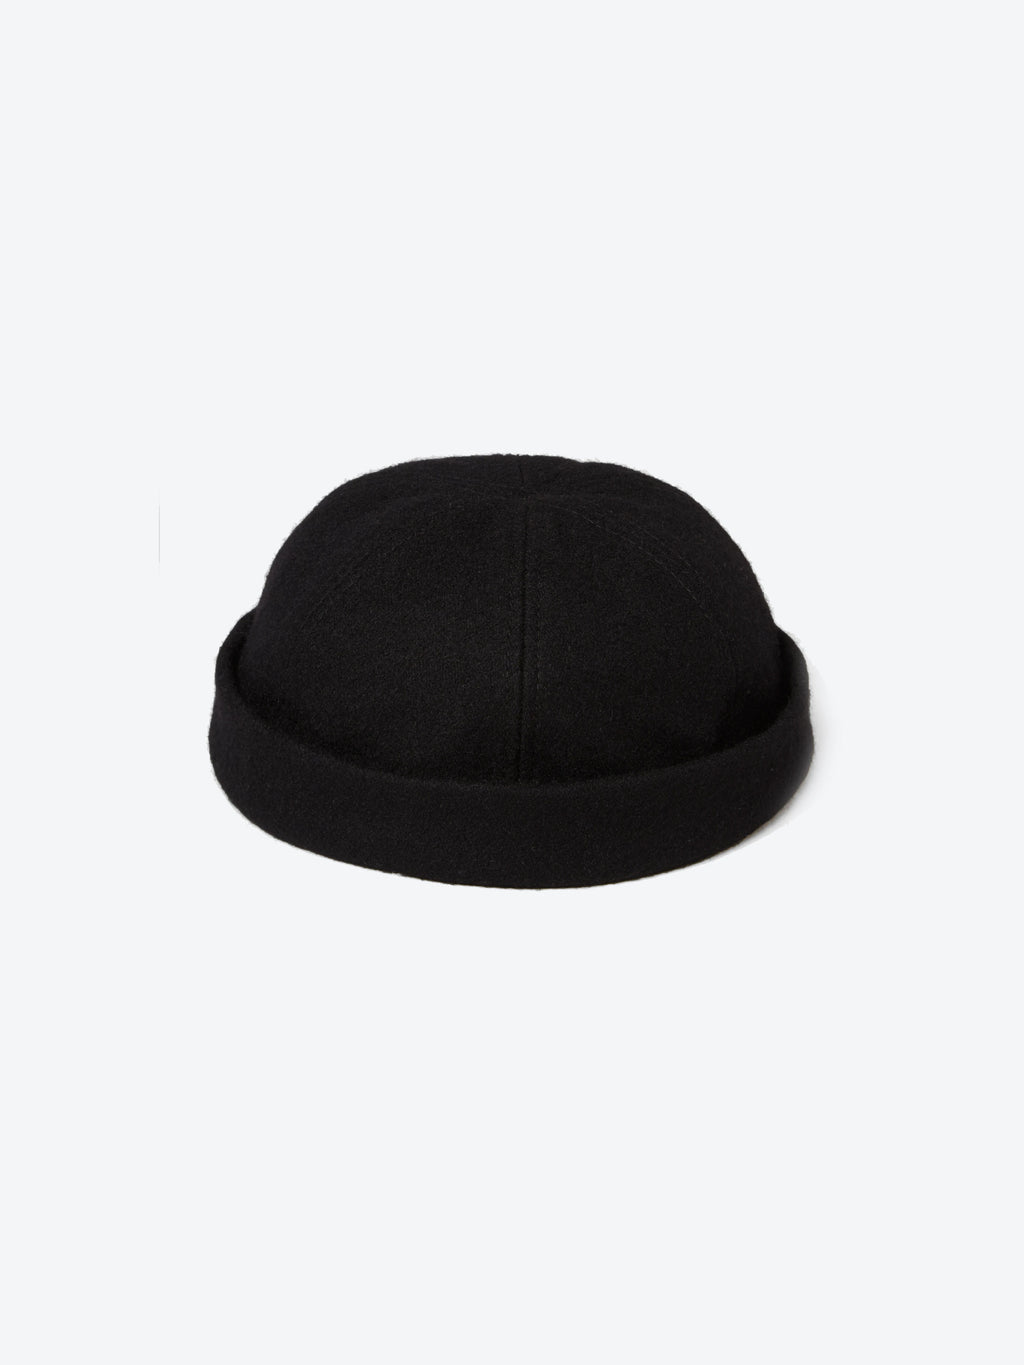 Wool Docker Cap - Black